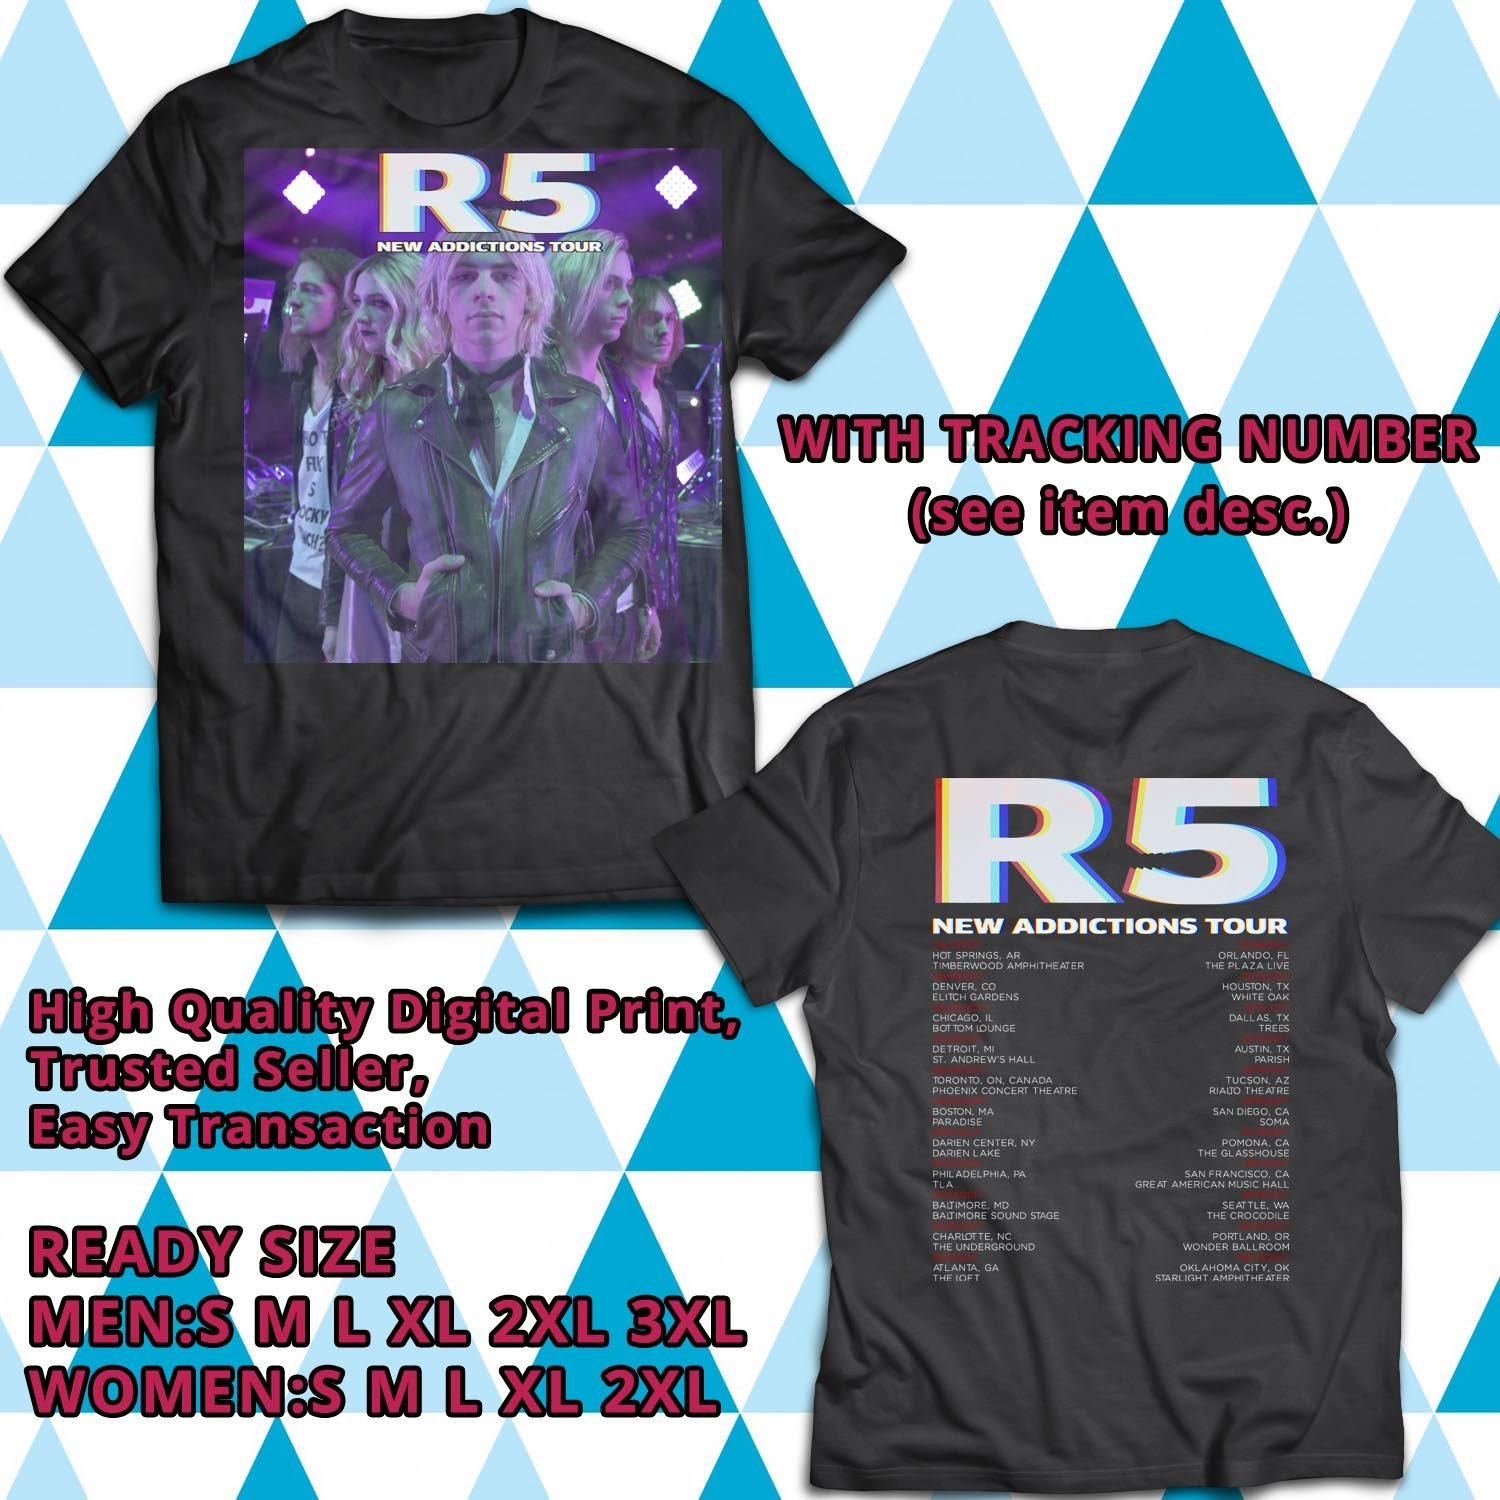 HITS R5 NEW ADDICTIONS NORTH AMERICA TOUR 2017 BLACK TEE'S 2SIDE MAN WOMEN ASTR 990